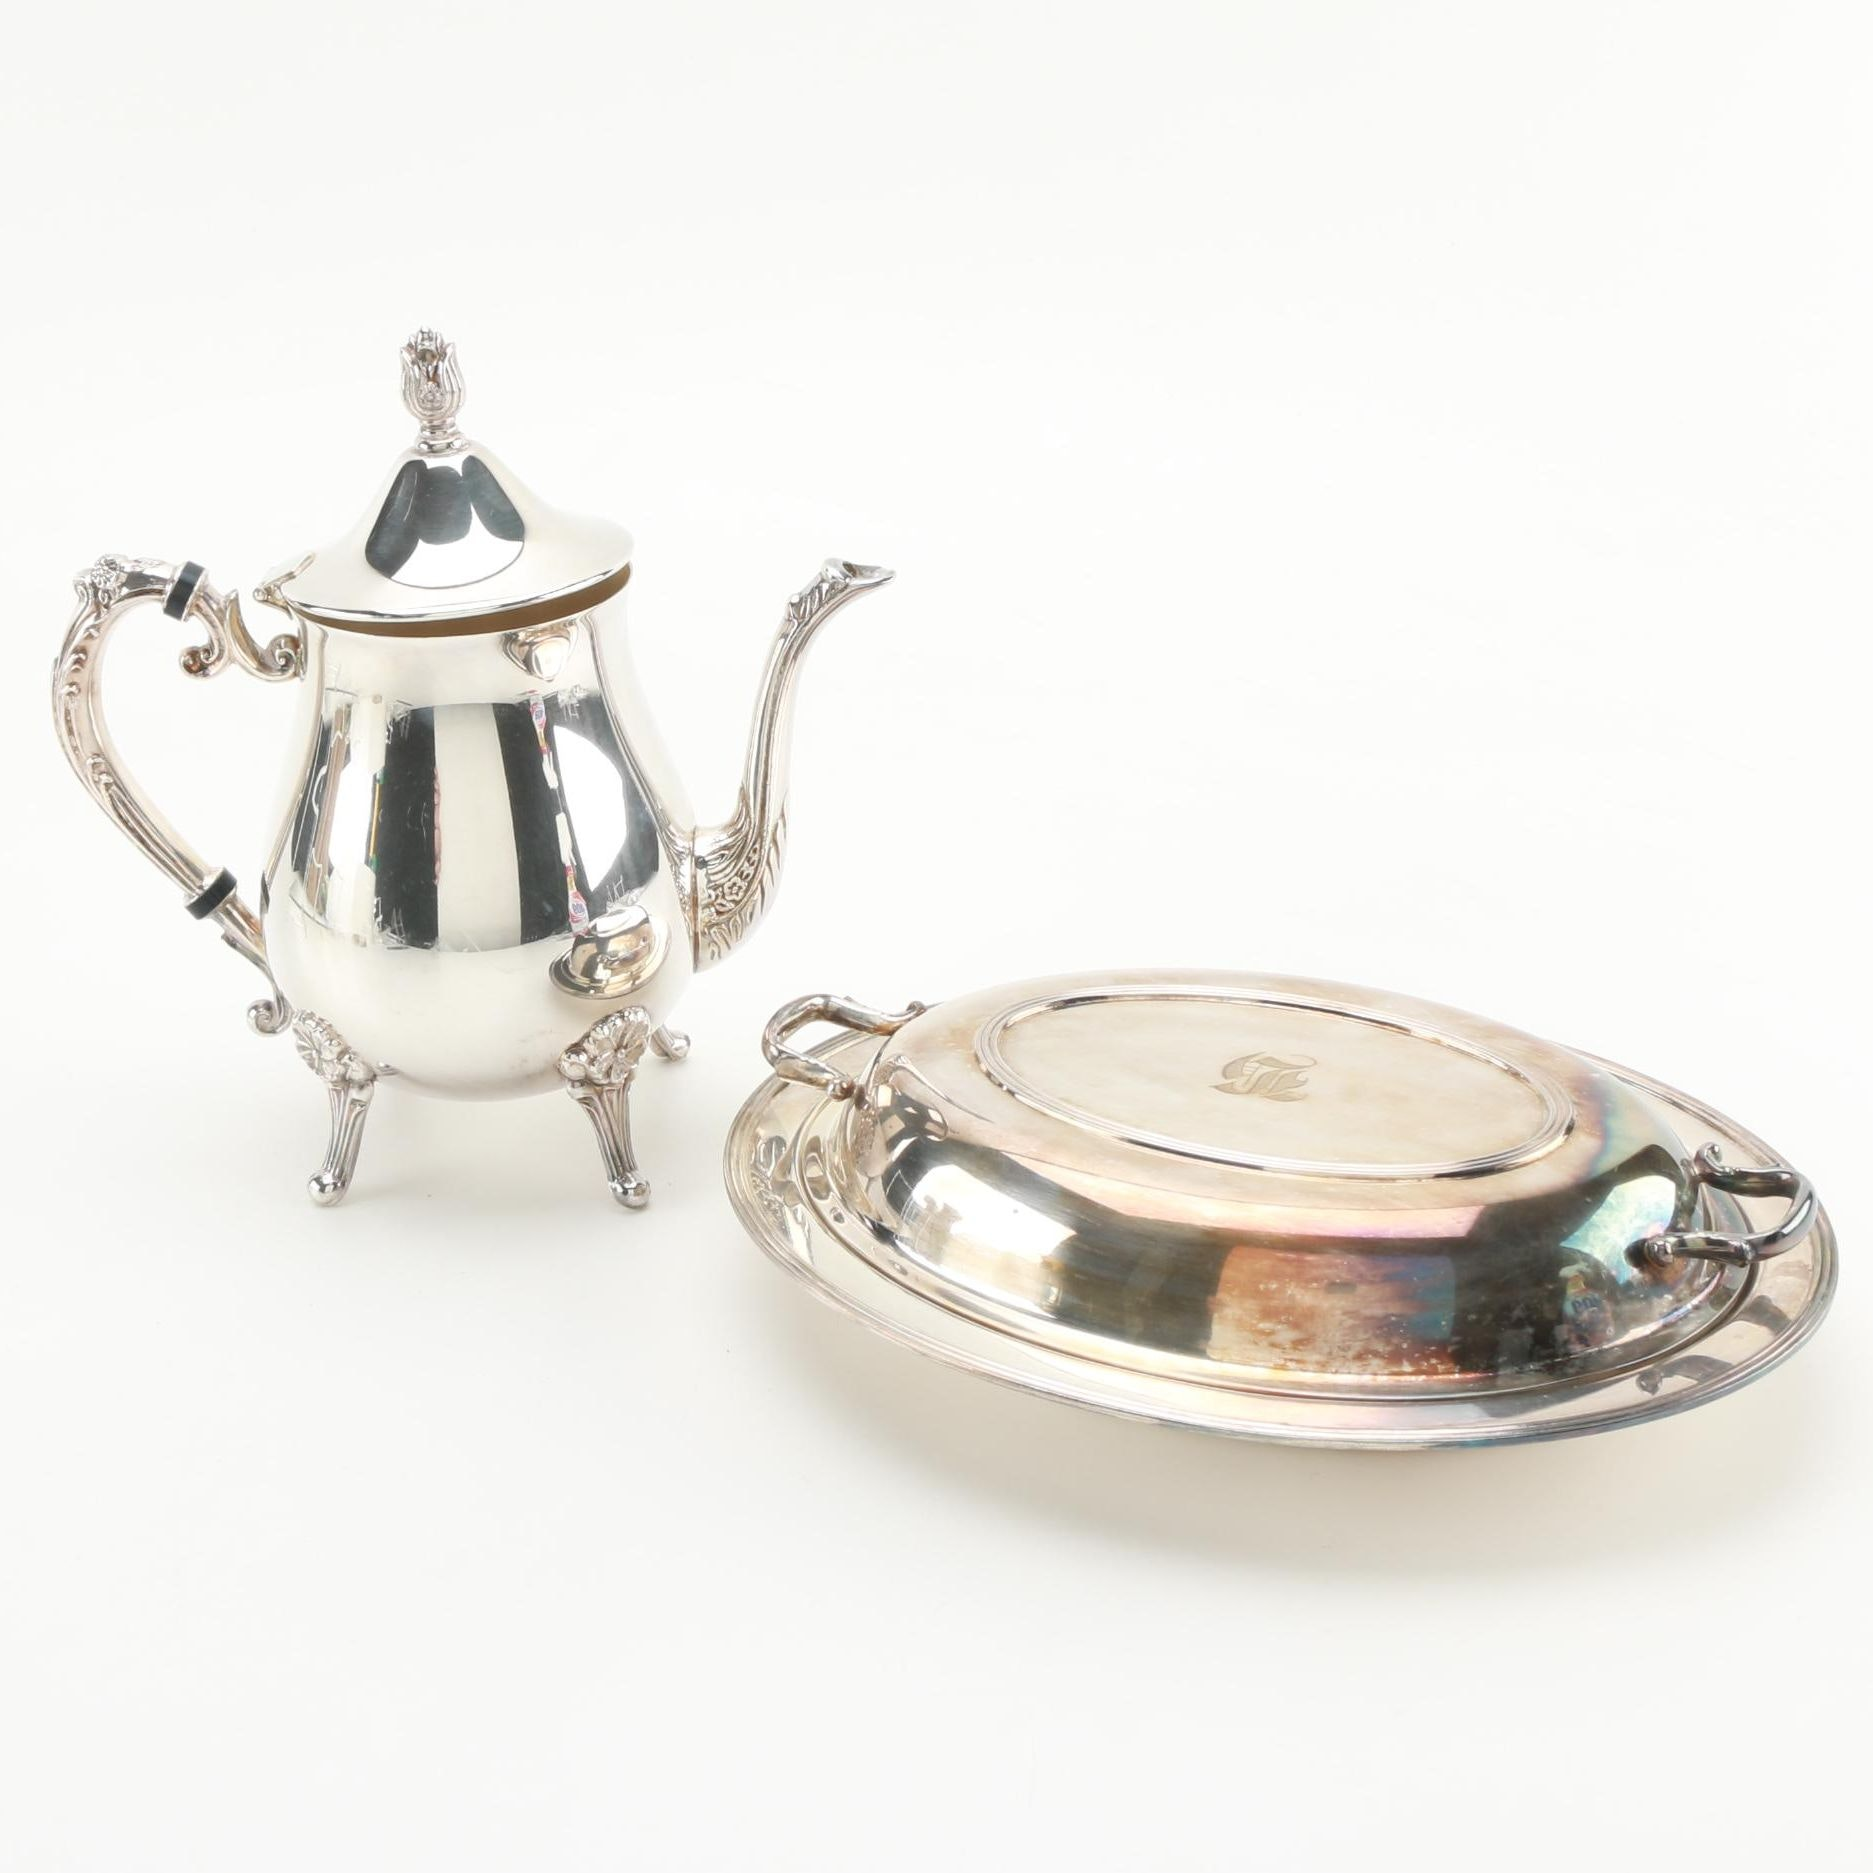 Silver Plat Lidded Serving Dish and Teapot